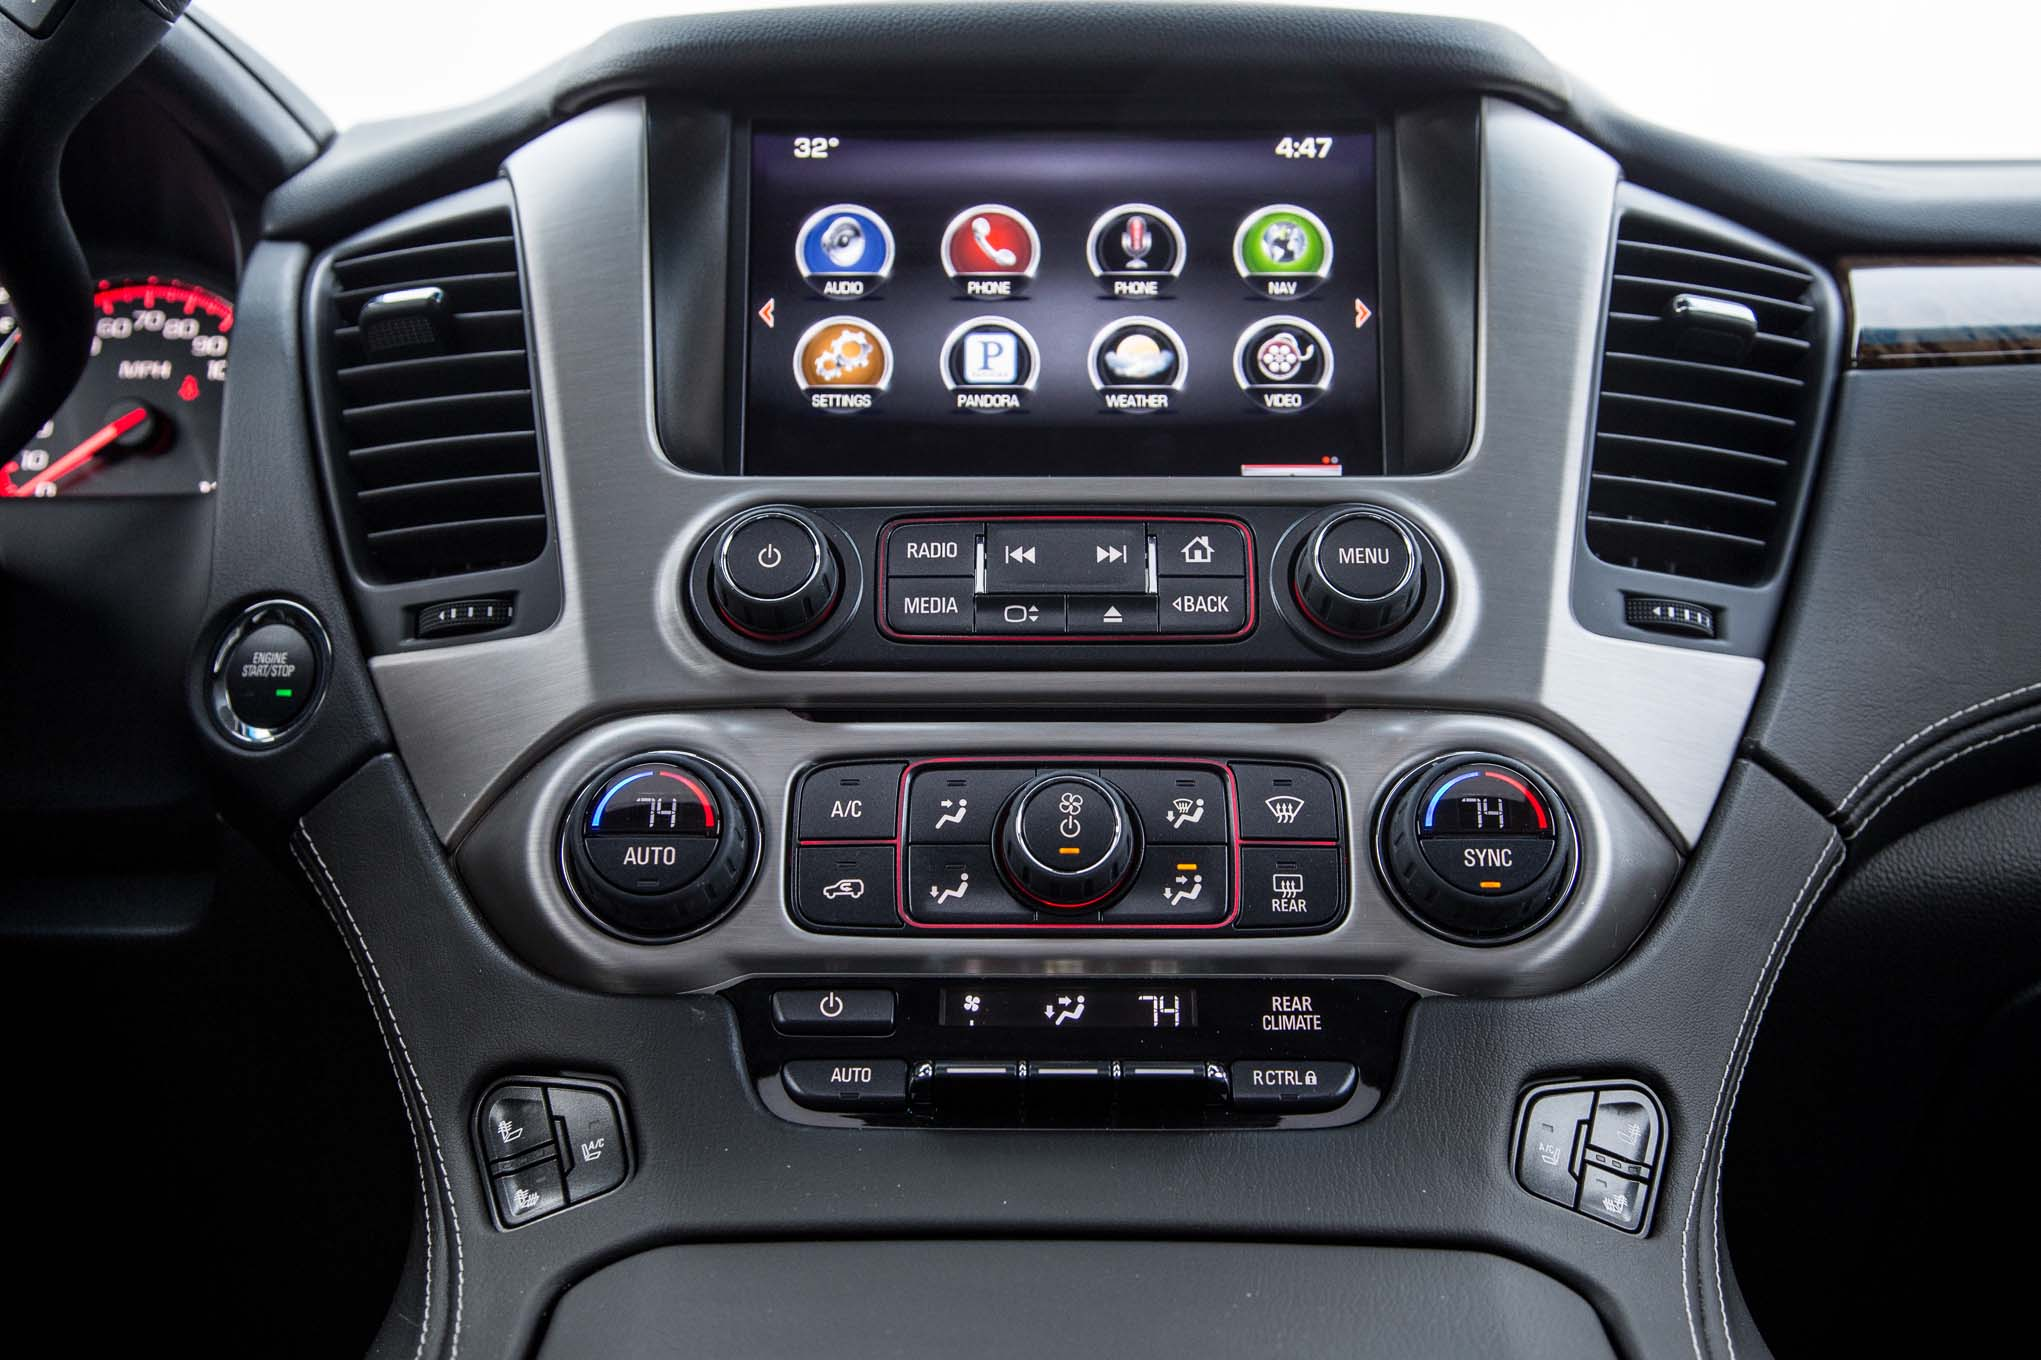 2015 Gmc Yukon Xl Interior Head Unit Profile (Photo 8 of 10)